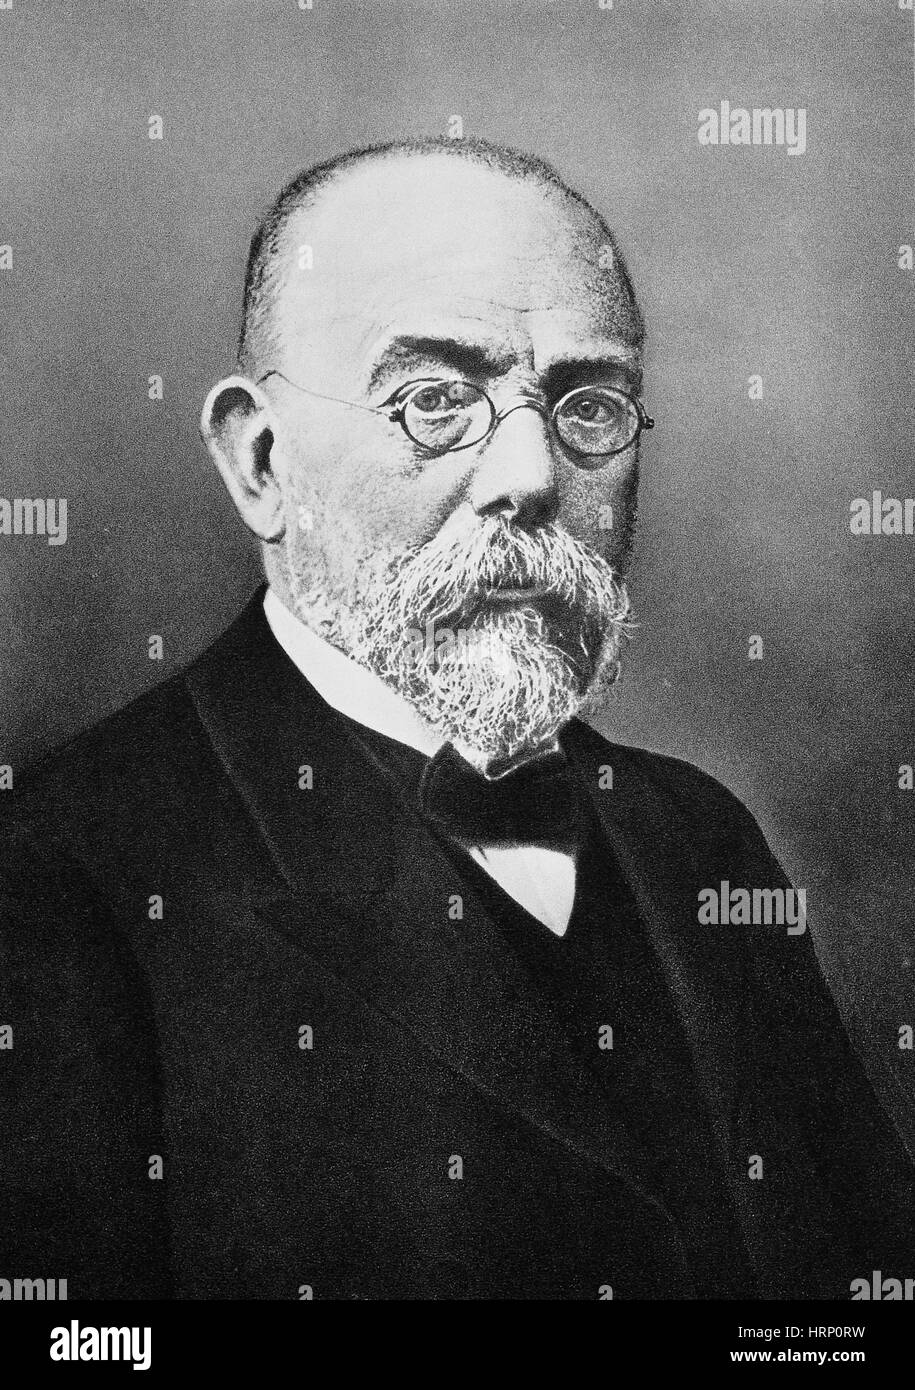 Robert Koch, German Bacteriologist - Stock Image